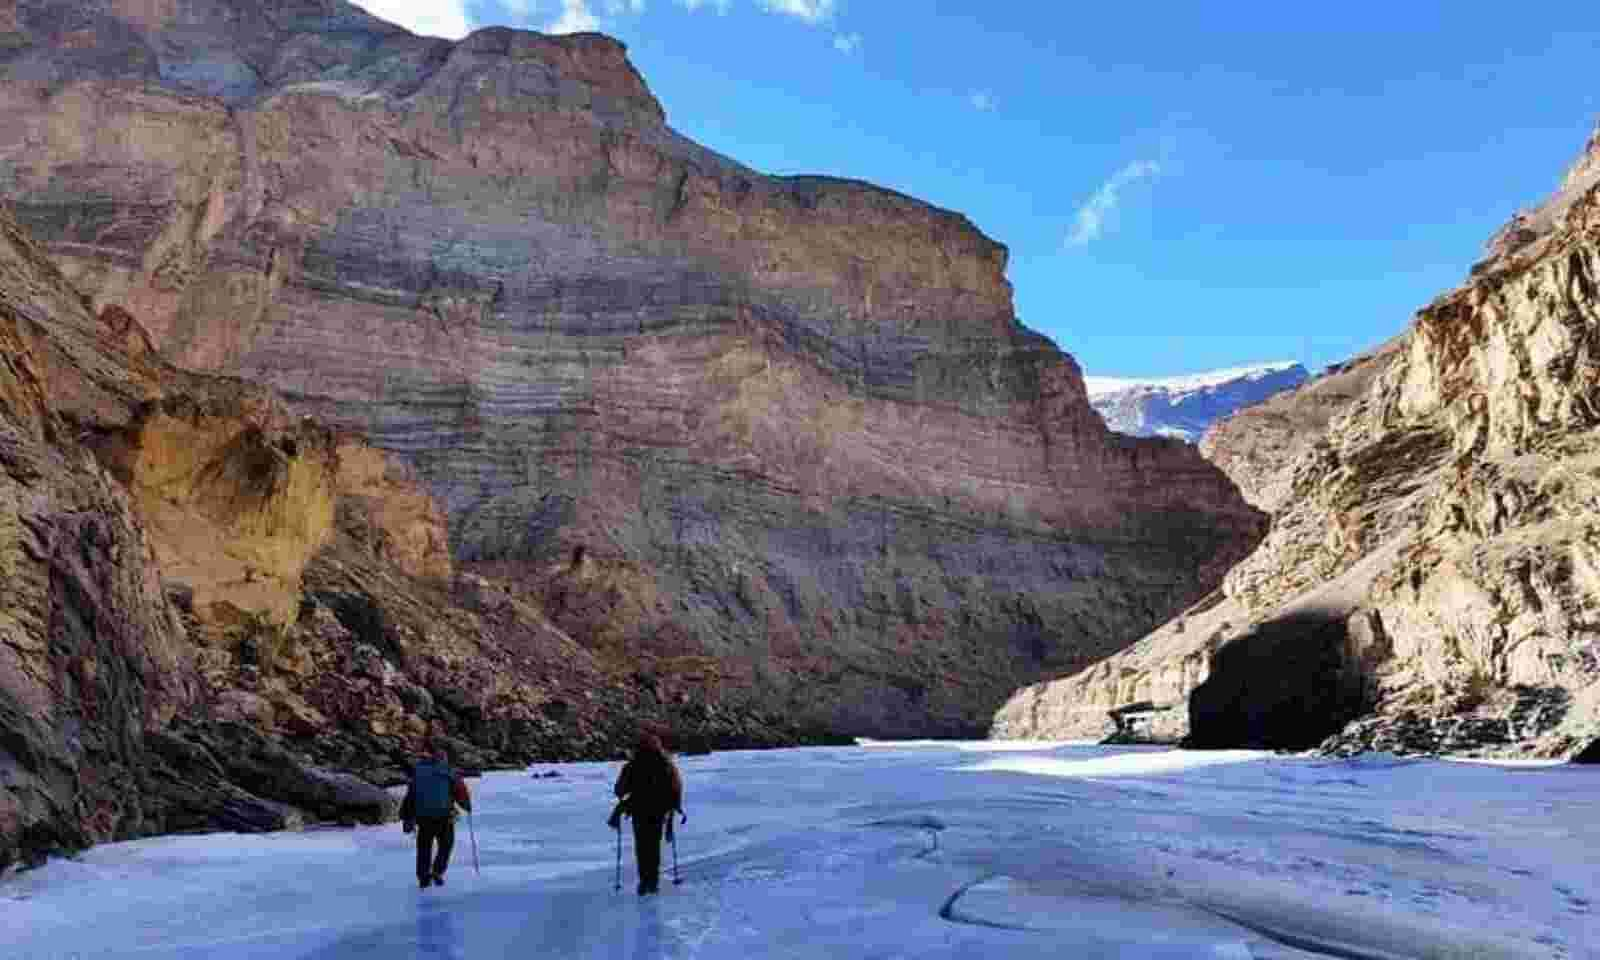 Khelo India Zanskar Winter Sports Festival begins today in Ladakh